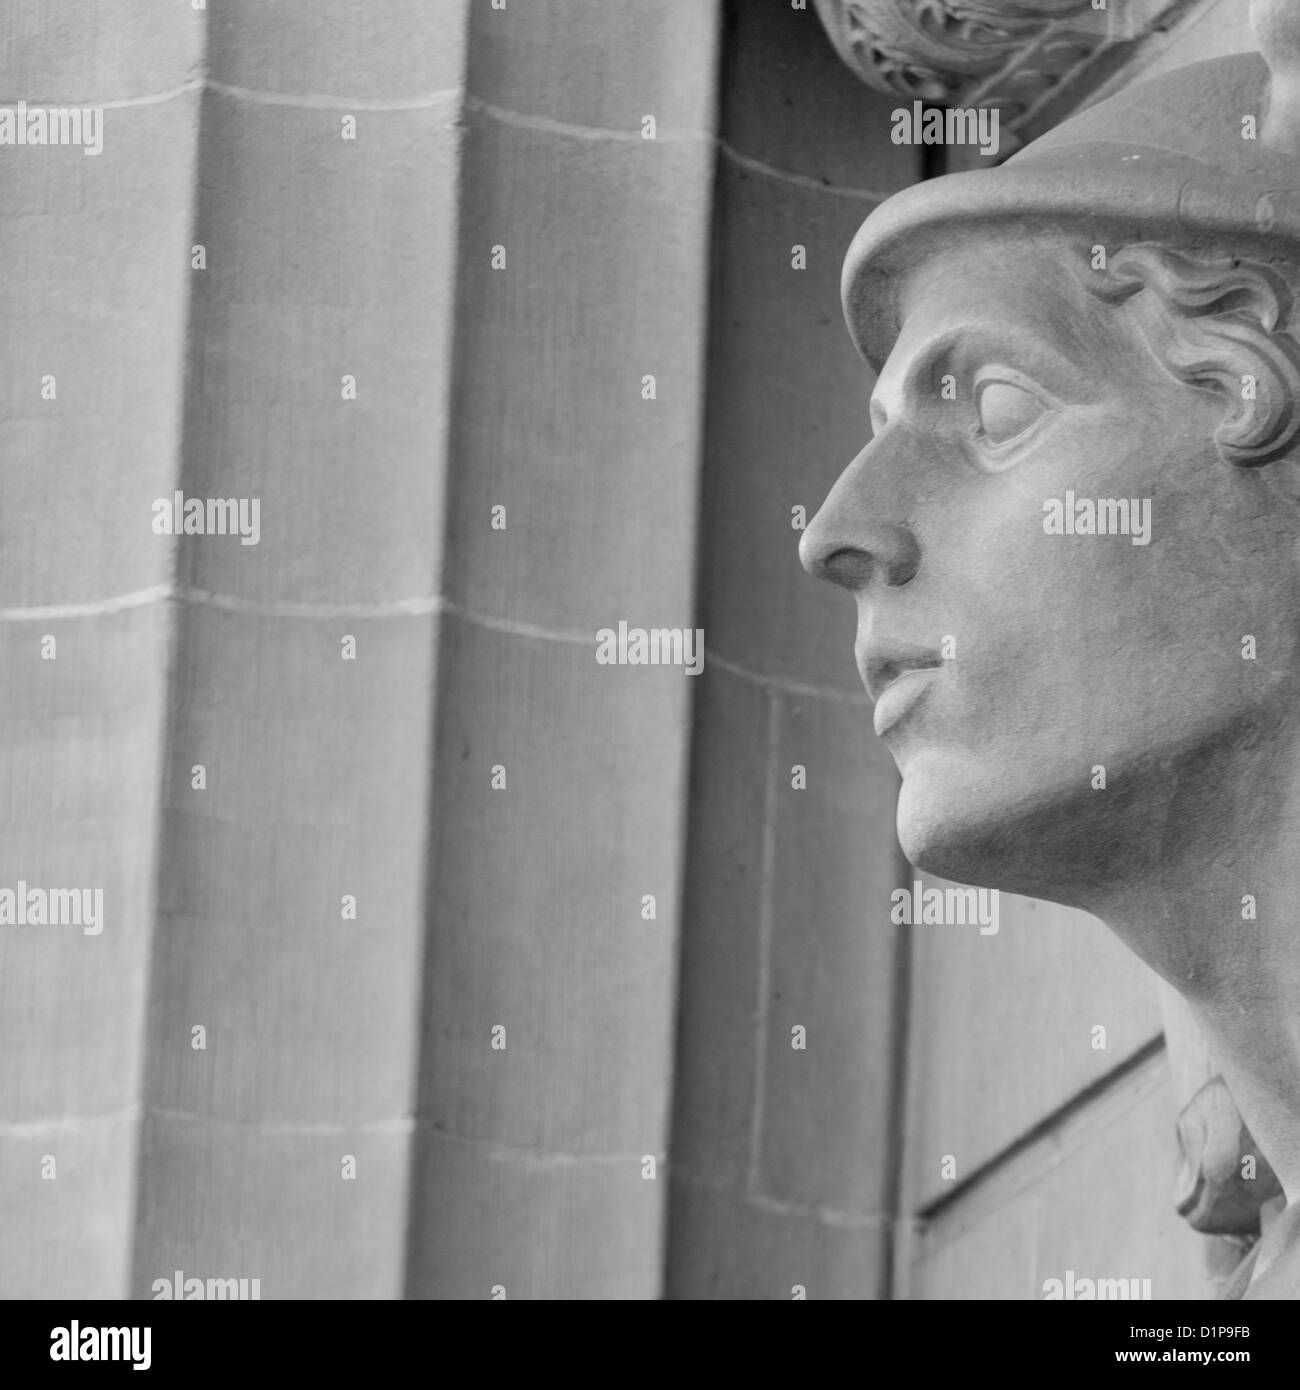 Statue on fa�ade of a building, Bahnhofstrasse, Zurich, Switzerland - Stock Image